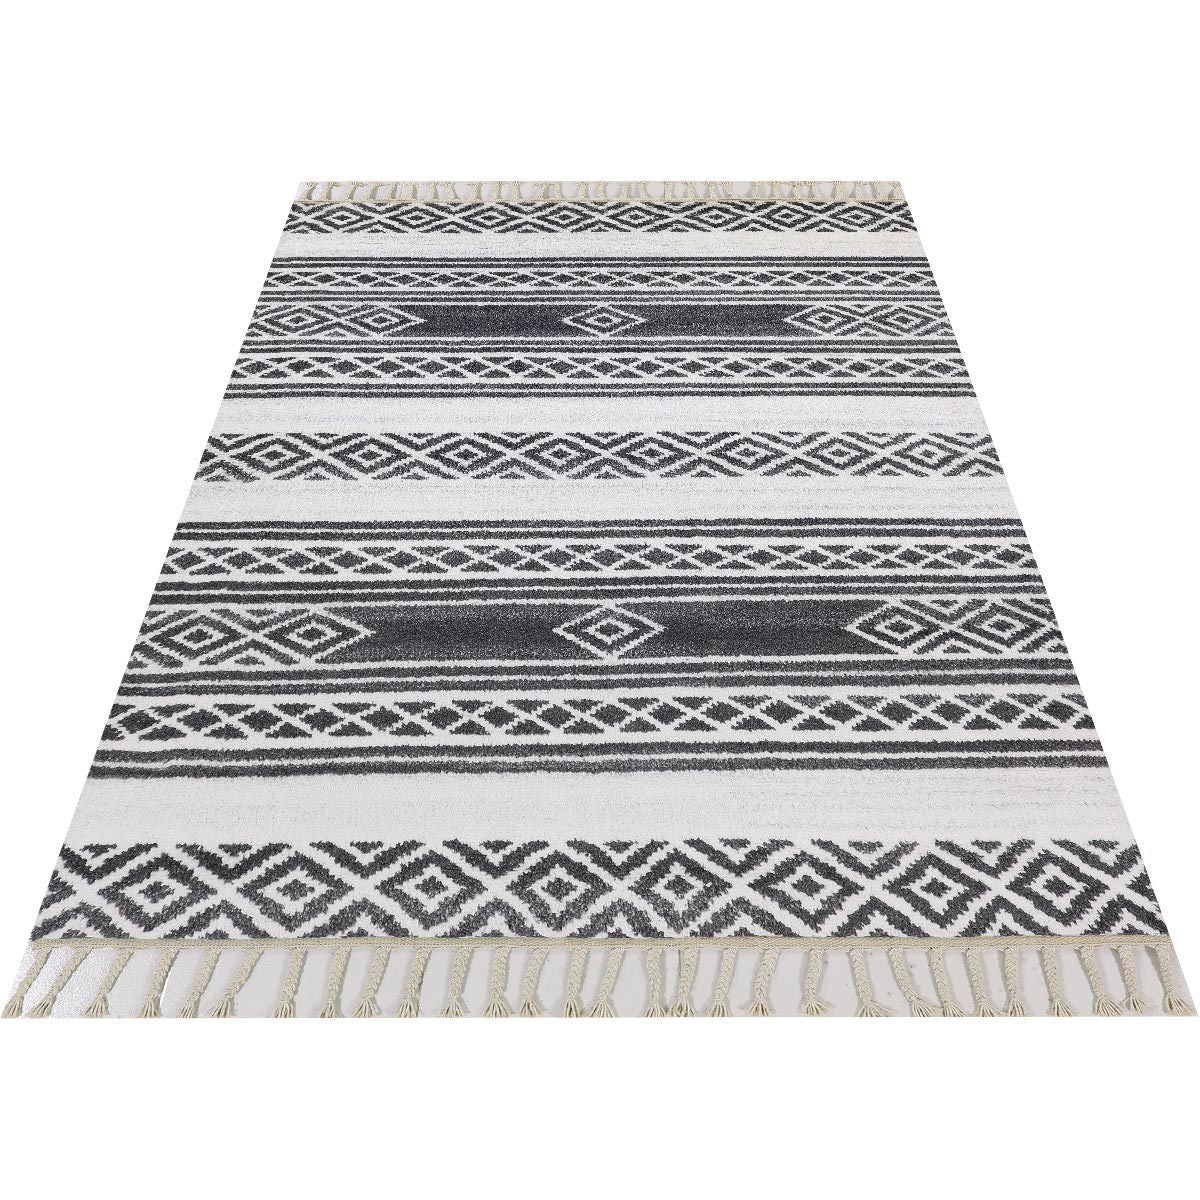 Moroccan Berber Rug 04 Dark Grey/White 2